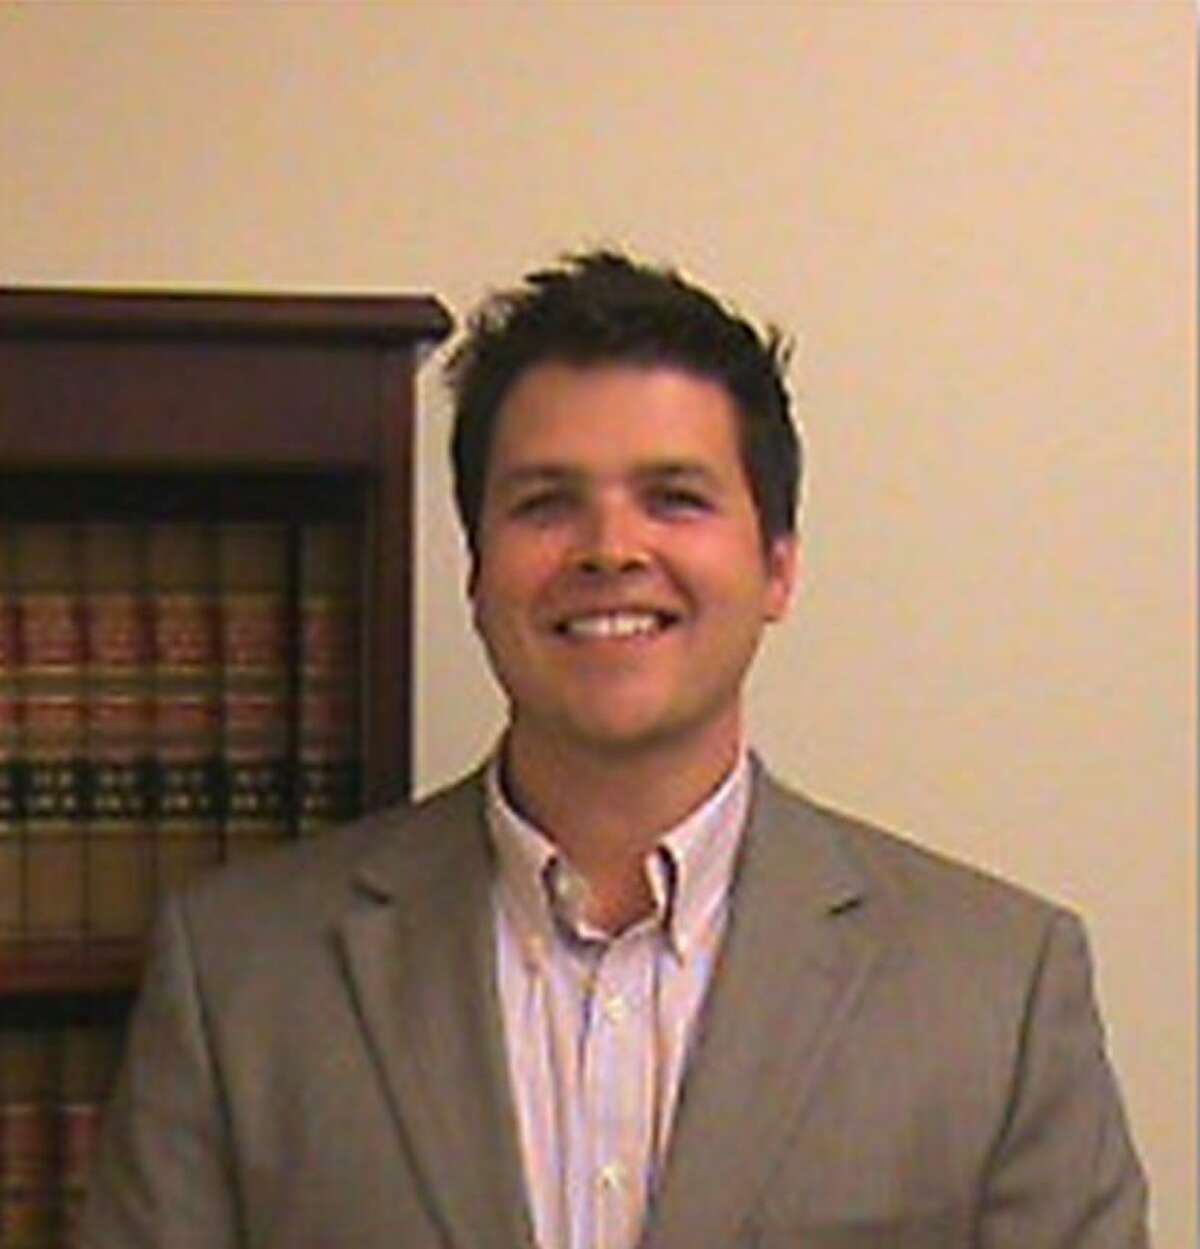 Guadalupe County Attorney Dave Willborn was in private practice when the disputed car sale occurred.